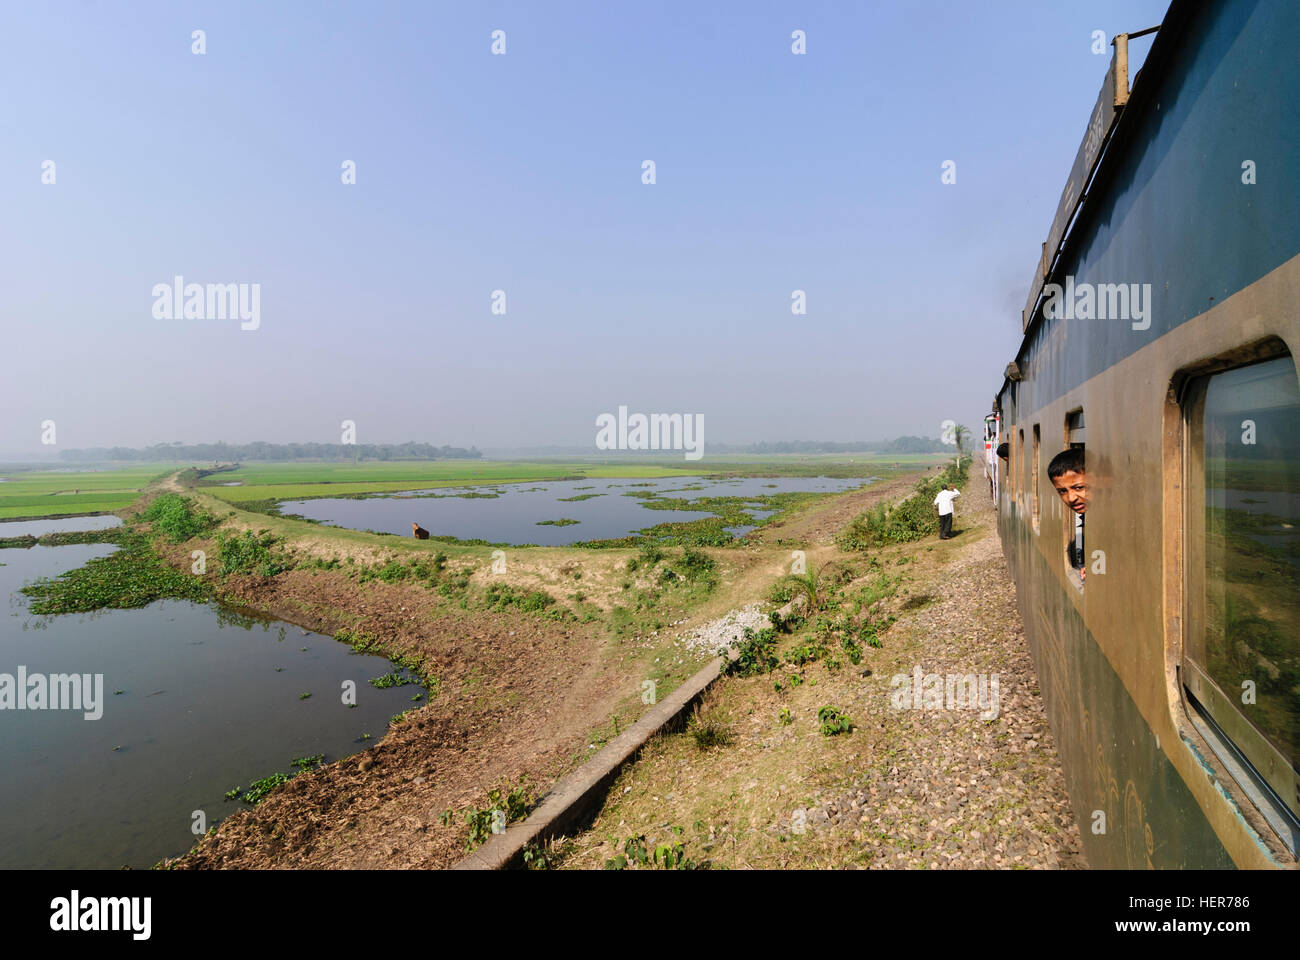 : Intercity train passes through rice fields, Chittagong Division, Bangladesh - Stock Image